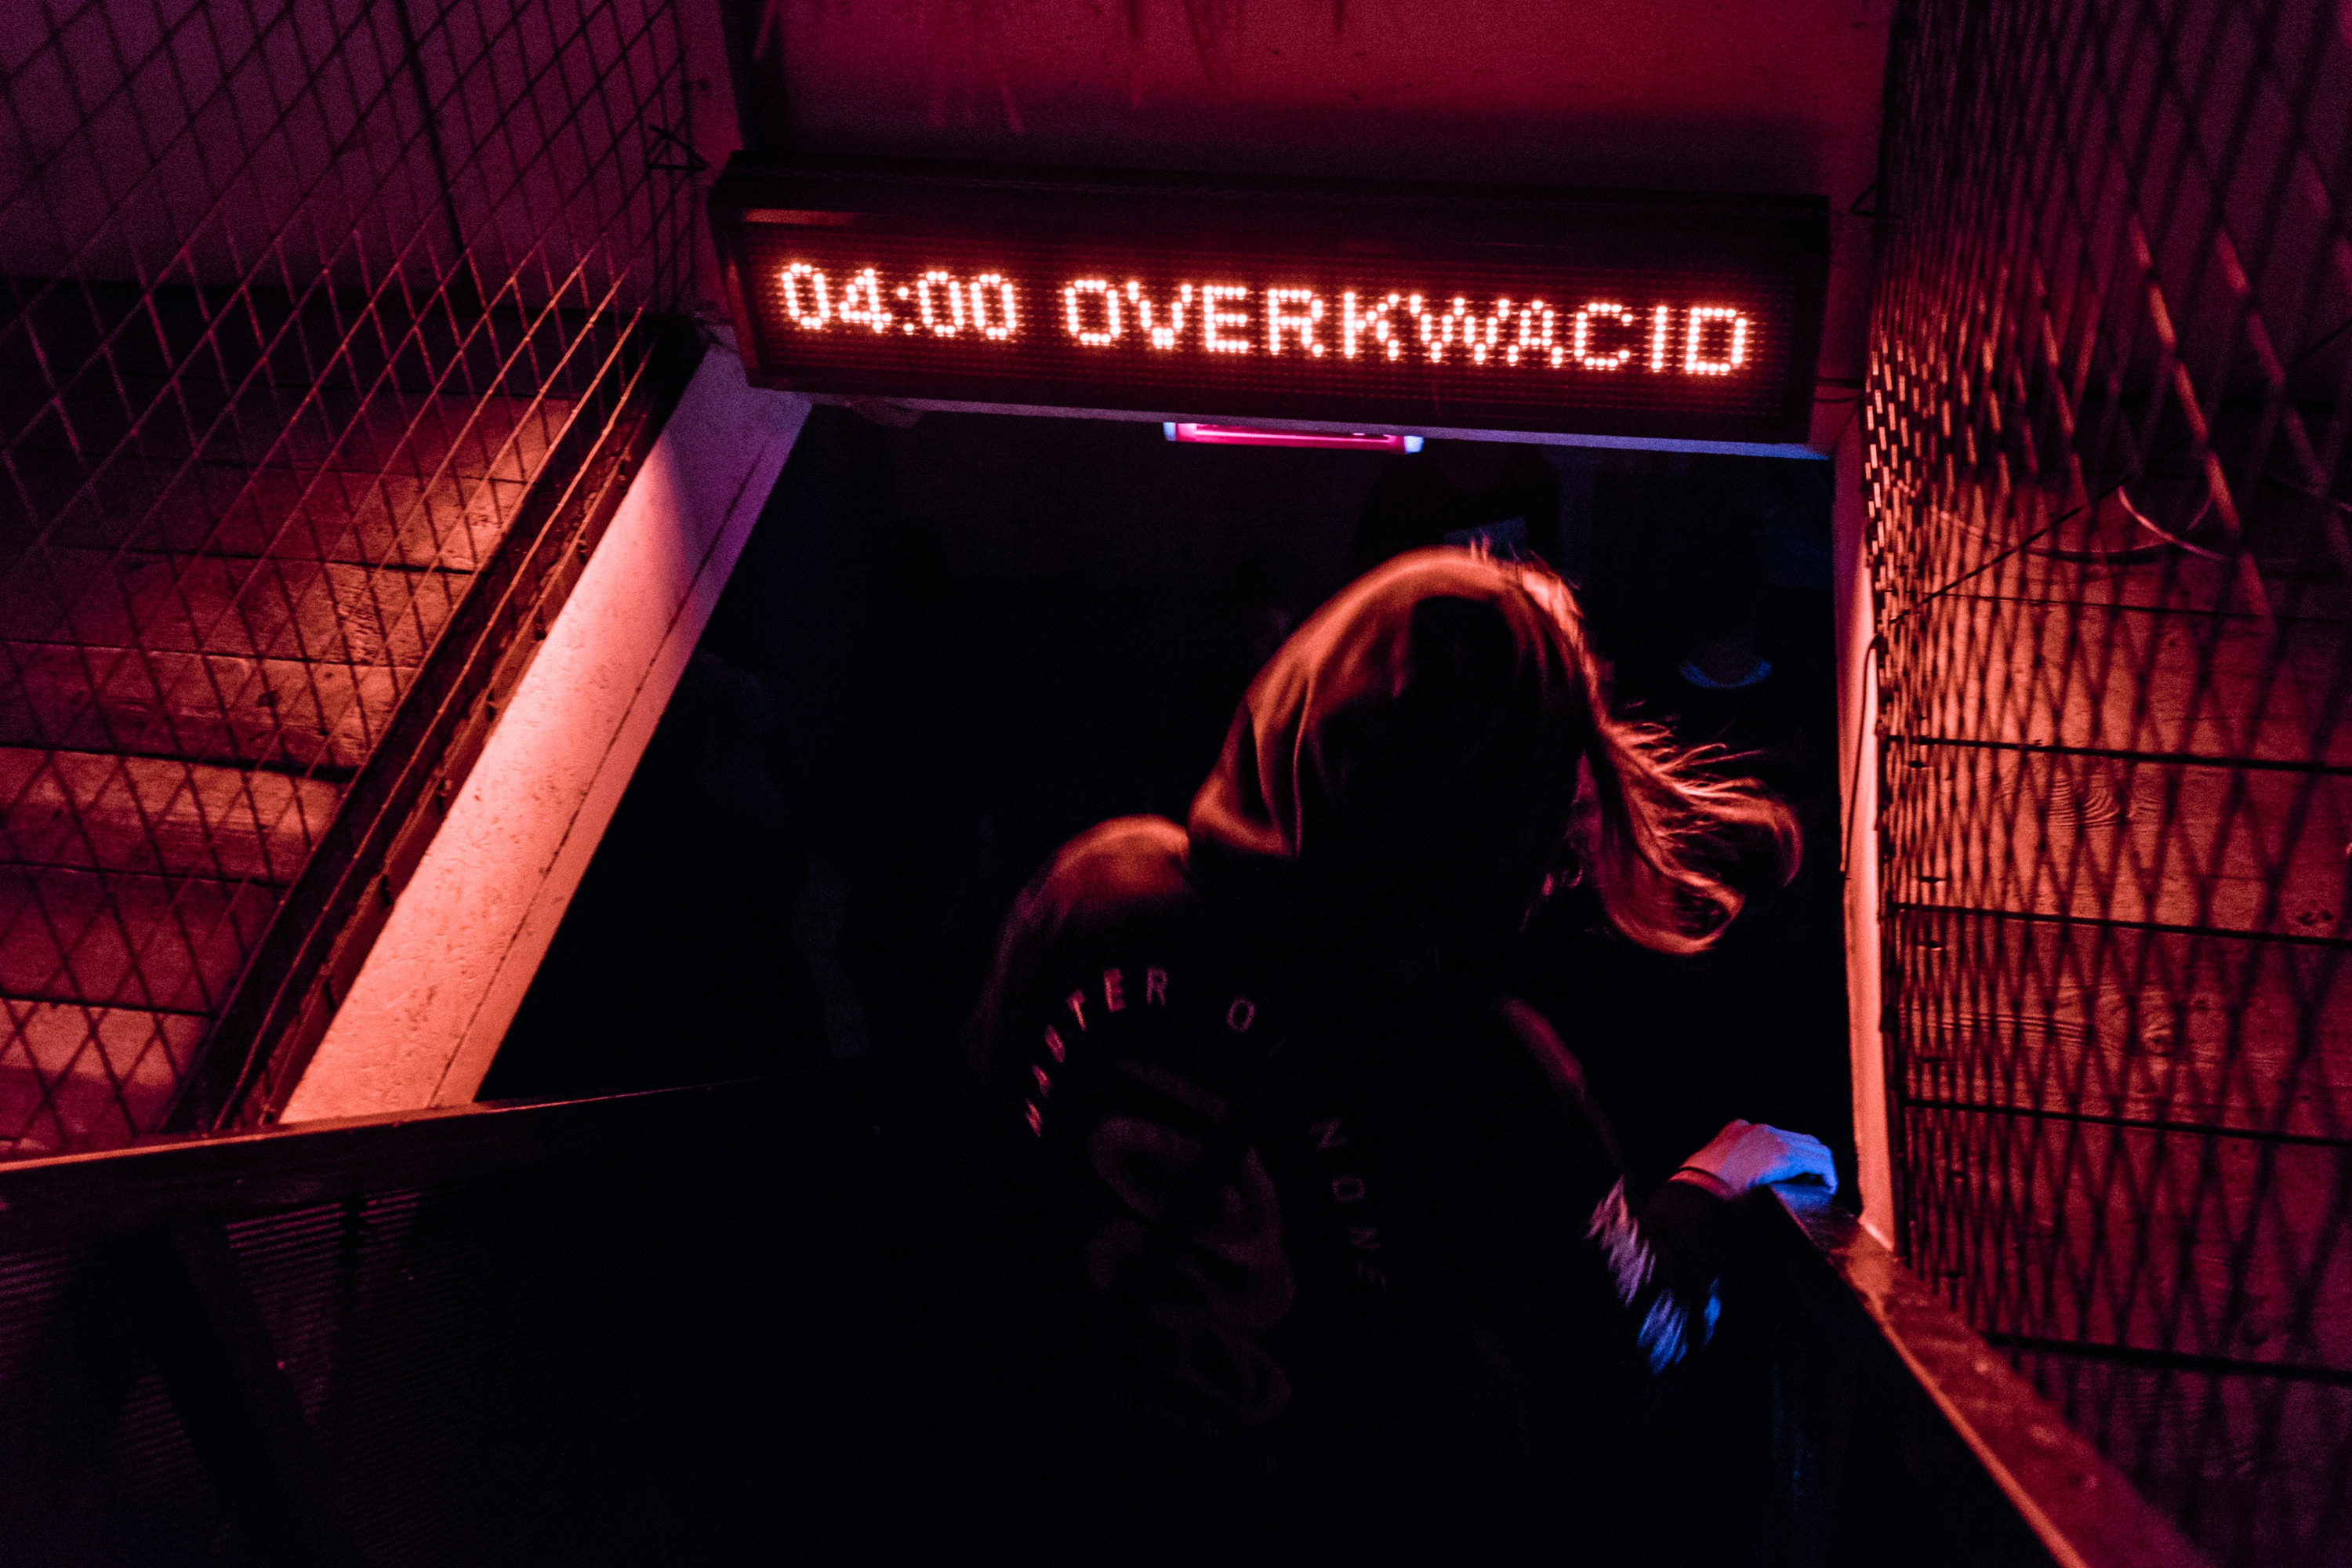 General 3000x2000 Moscow Russia neon women night dark photography night view lights hair   silhouette glowing clubs urban techno music signs red tumbler